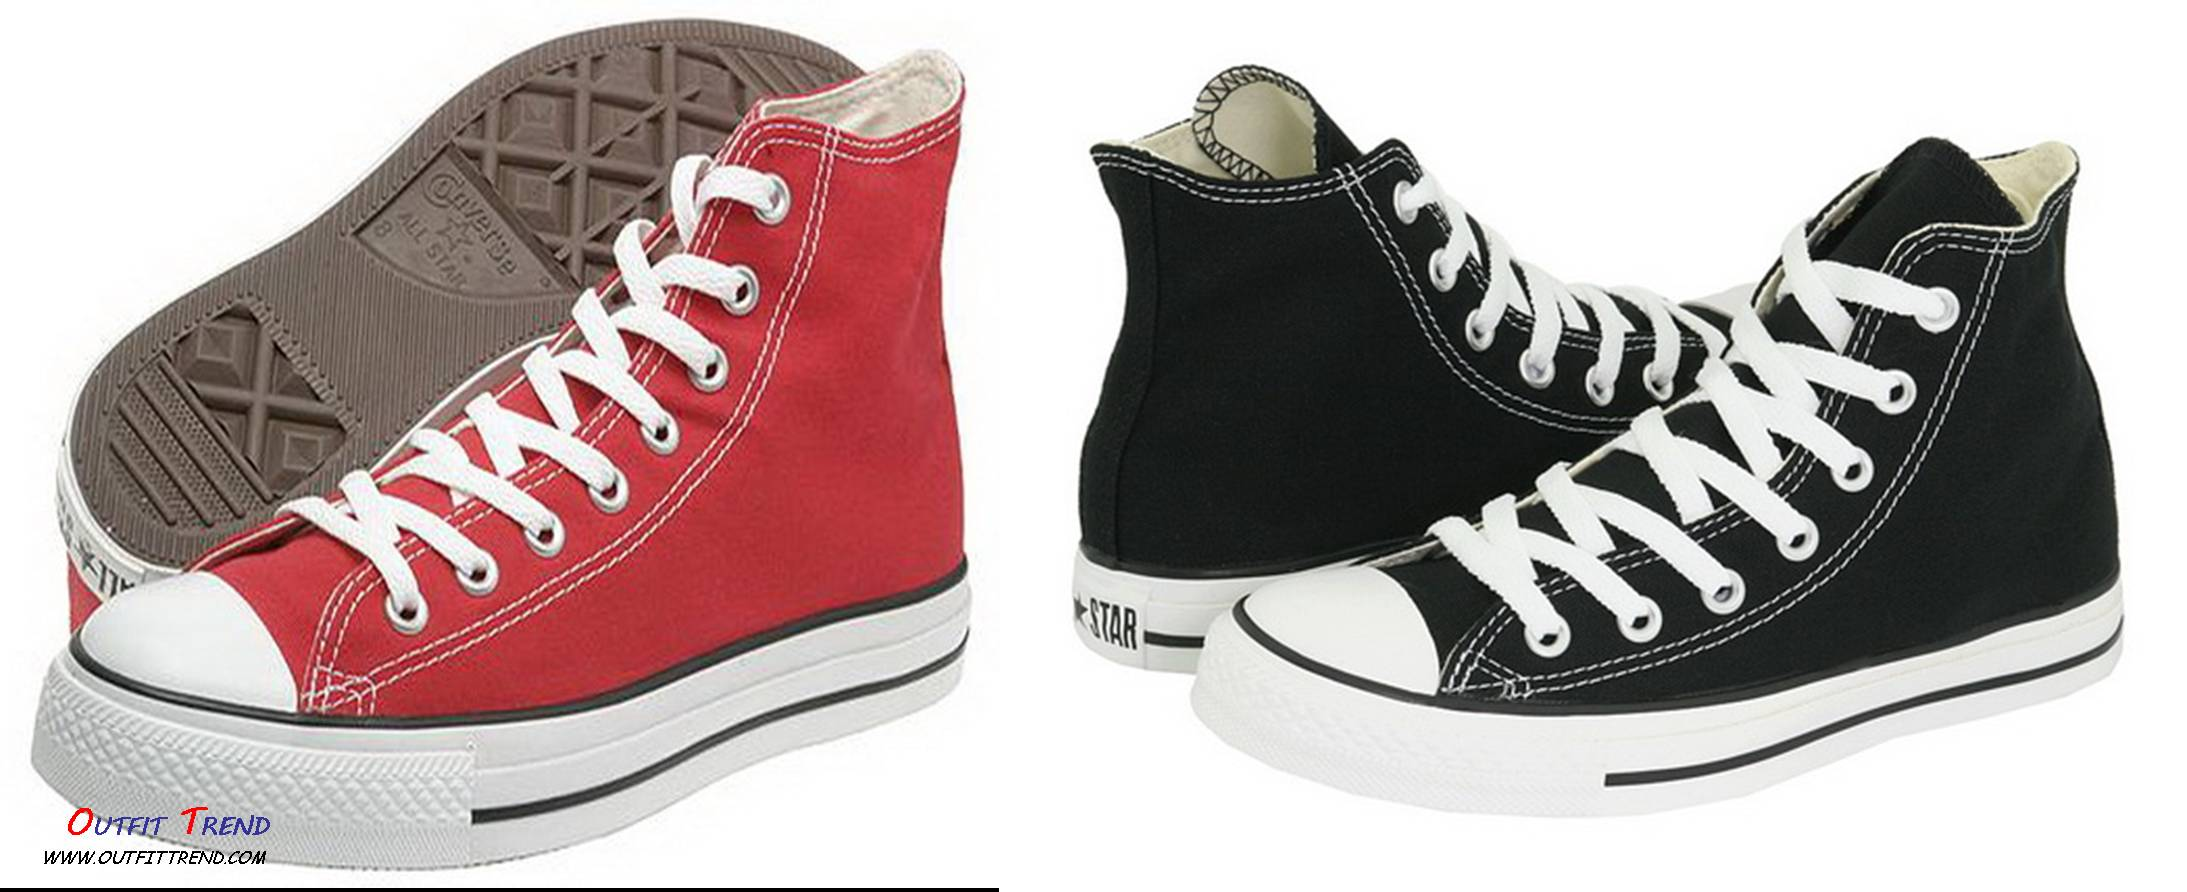 Converse Casual Shoes For Boys